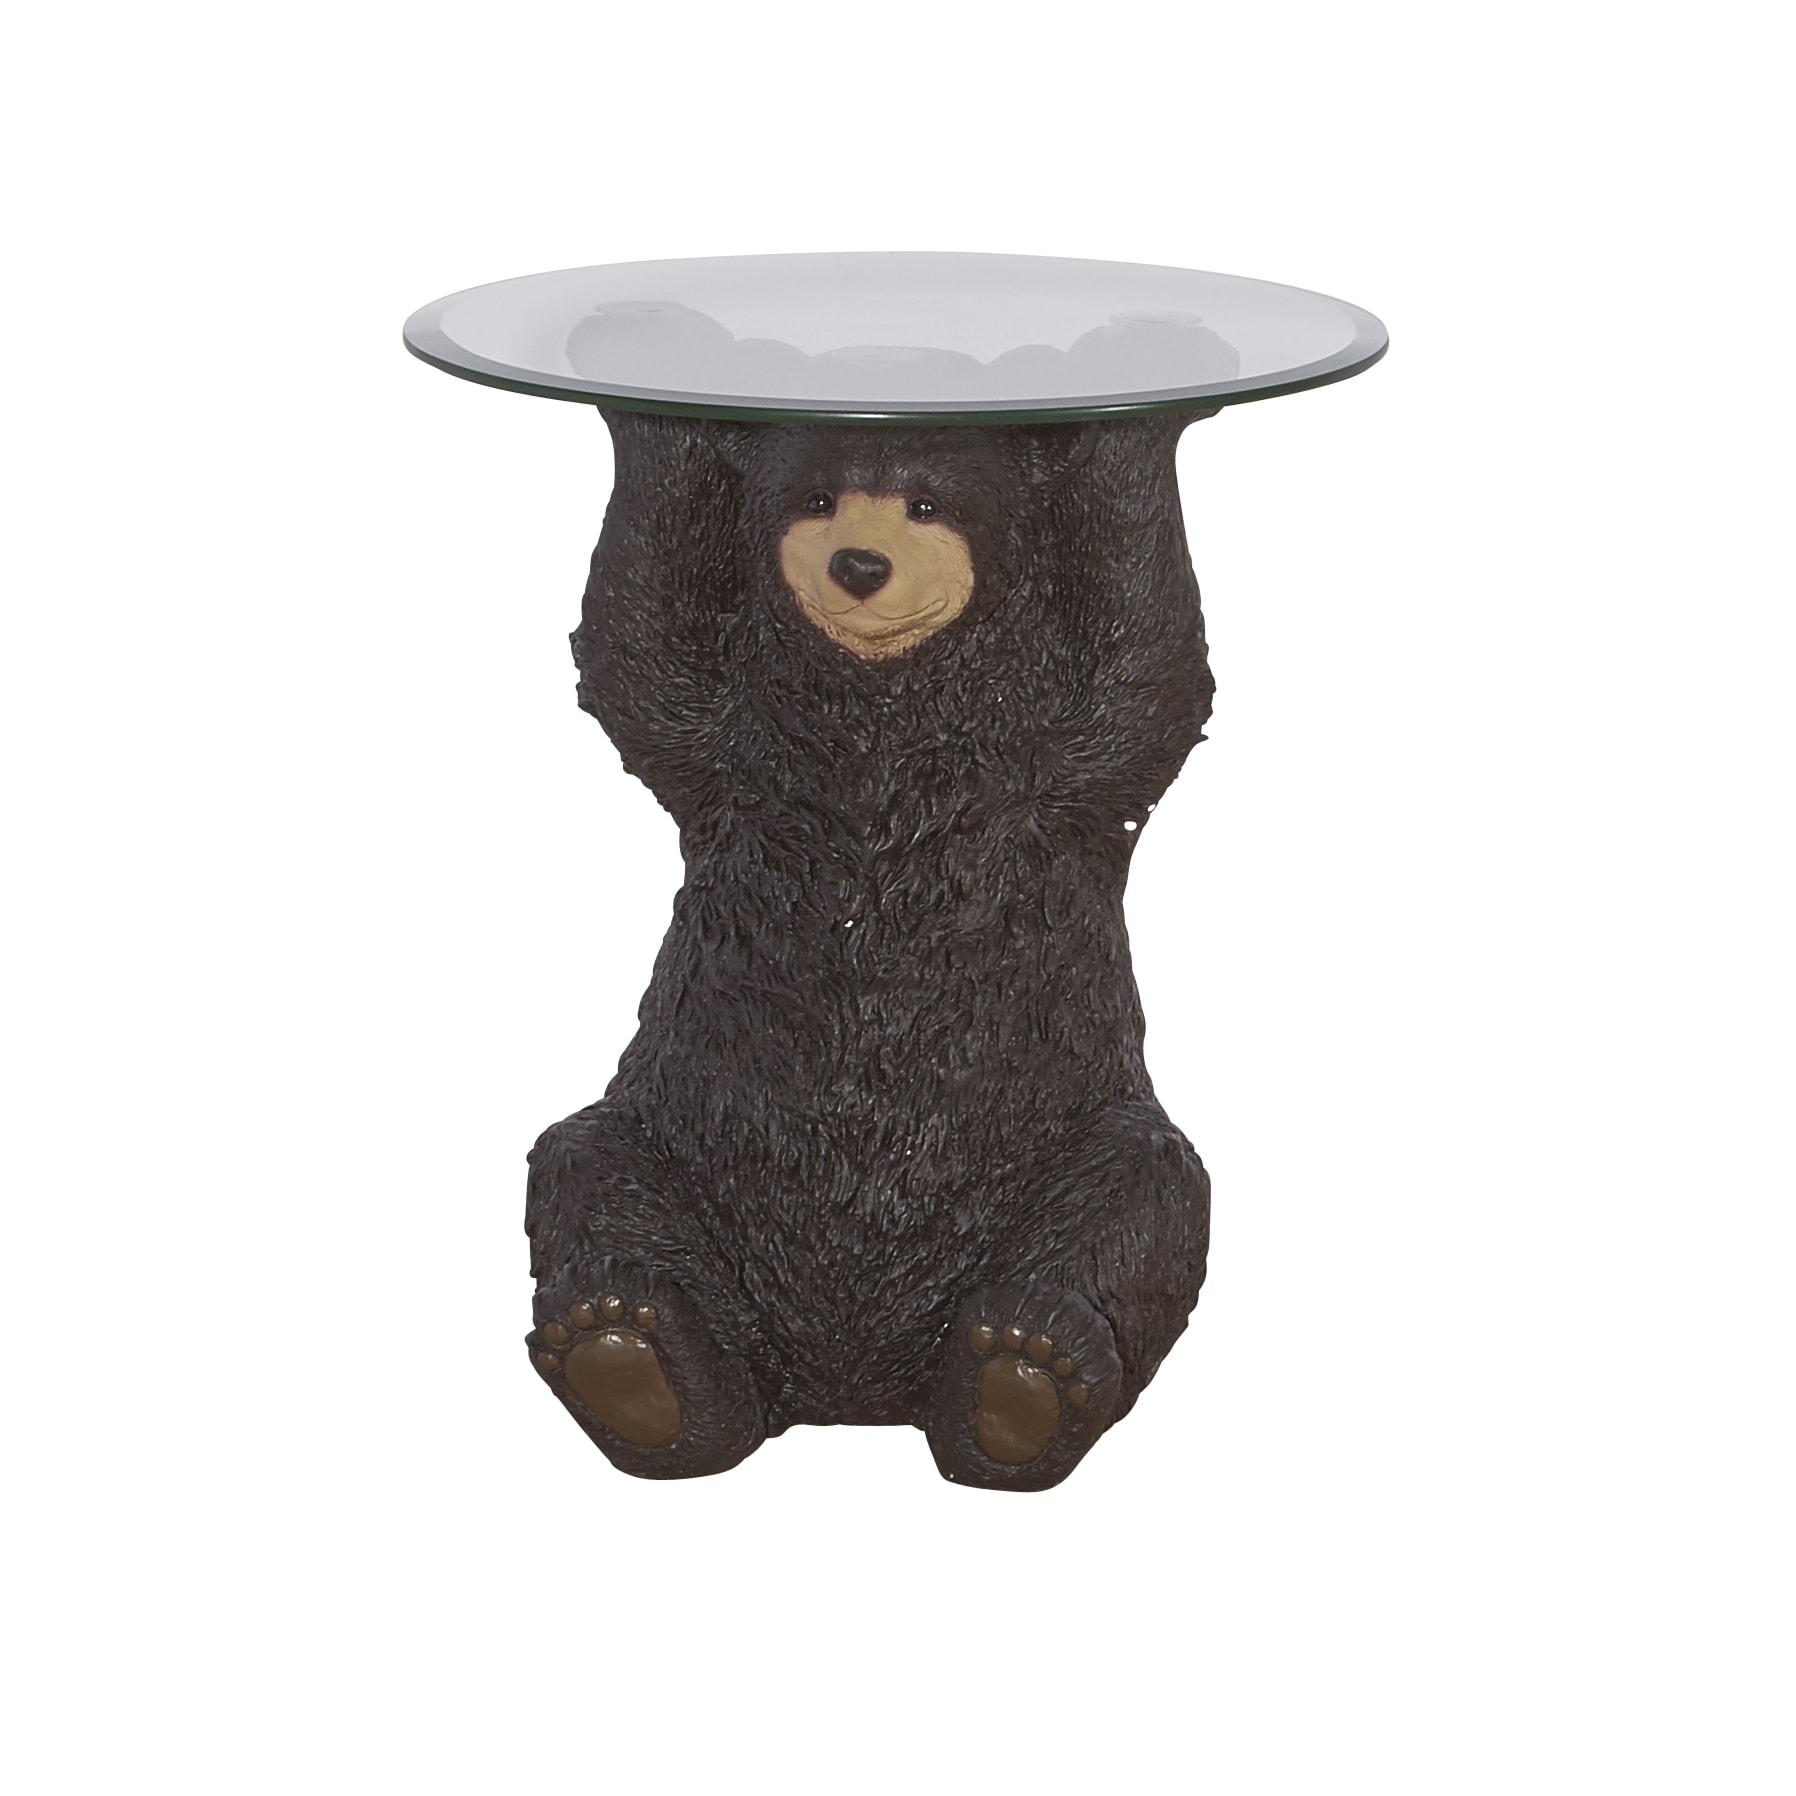 Powell Barney Bear Cabin Resin, Glass Accent Side Table by Overstock